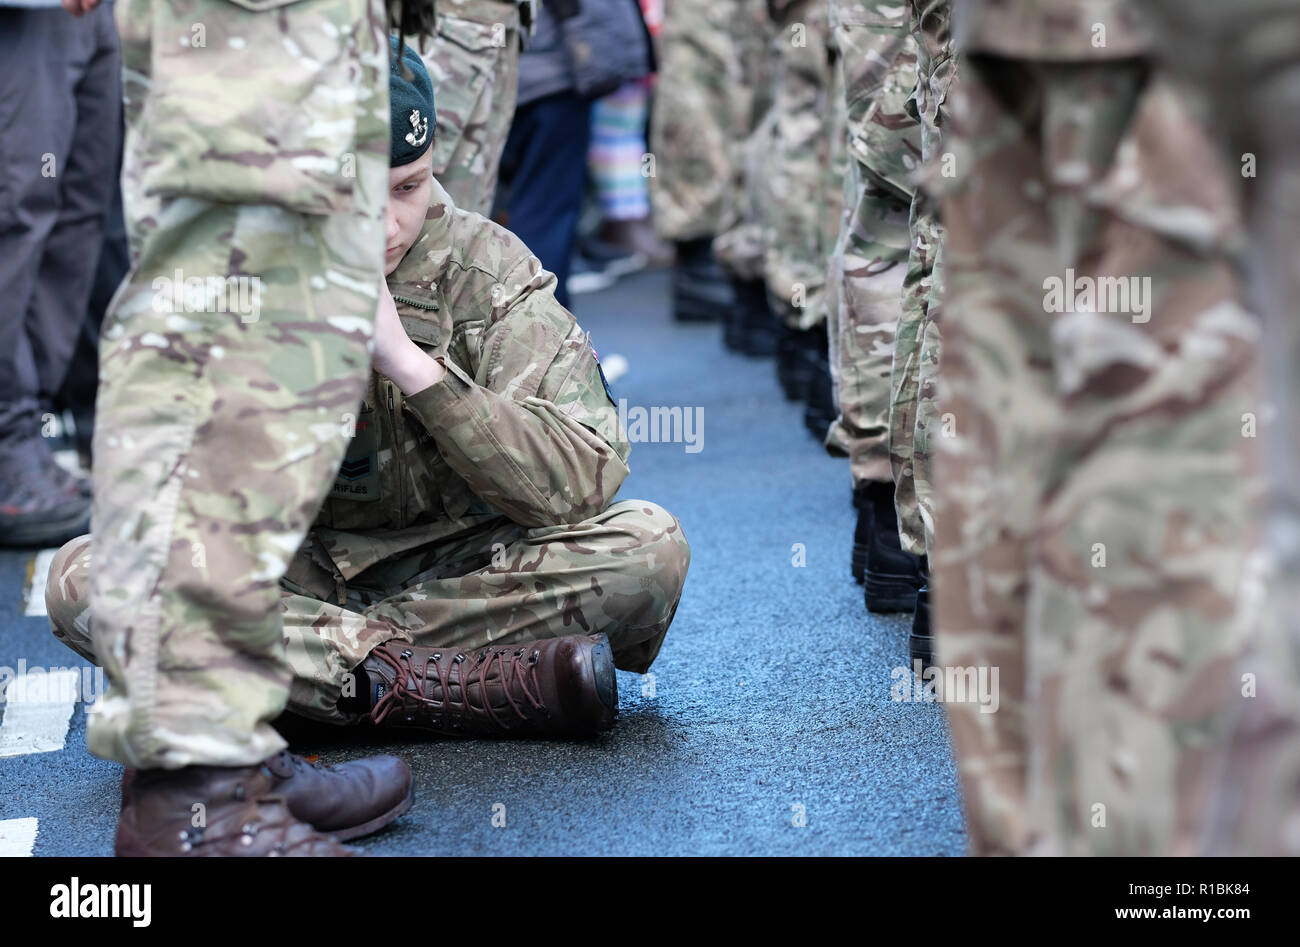 Hereford, Herefordshire, UK - Sunday 11th November 2018 - One young Combined Cadet Force ( CCF ) cadet rests among his colleagues after feeling unwell at the War Memorial during the Remembrance Sunday service in Hereford city centre.  Steven May / Alamy Live News - Stock Image